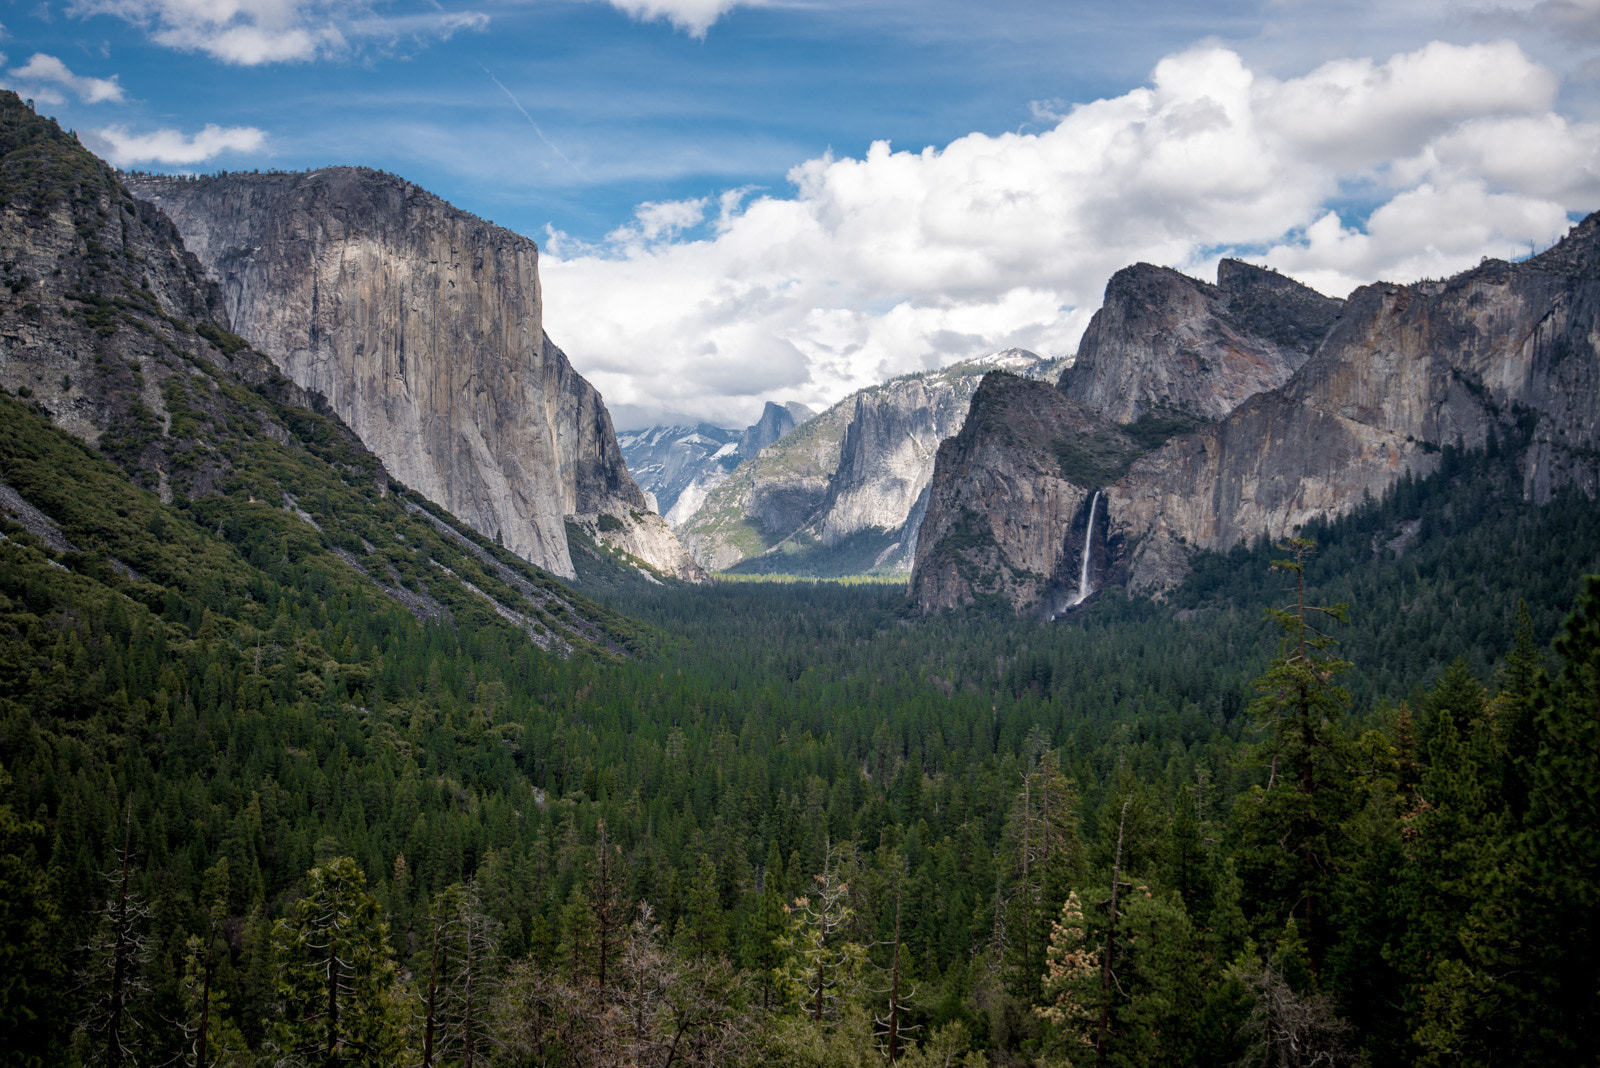 Photograph Yosemite Postcard View by Michael Sievers on 500px